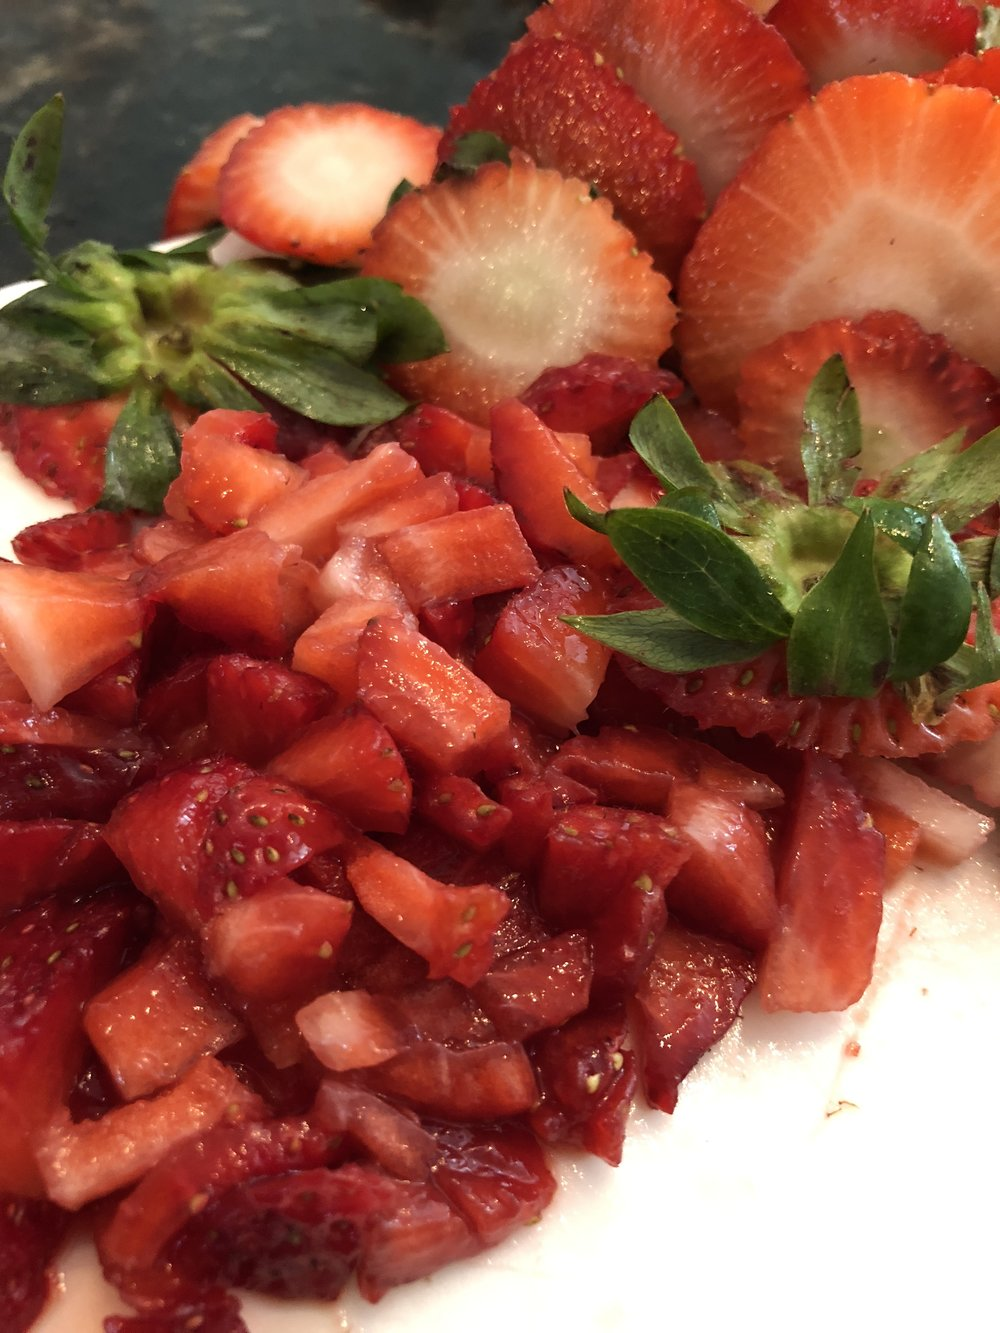 Macerating strawberries